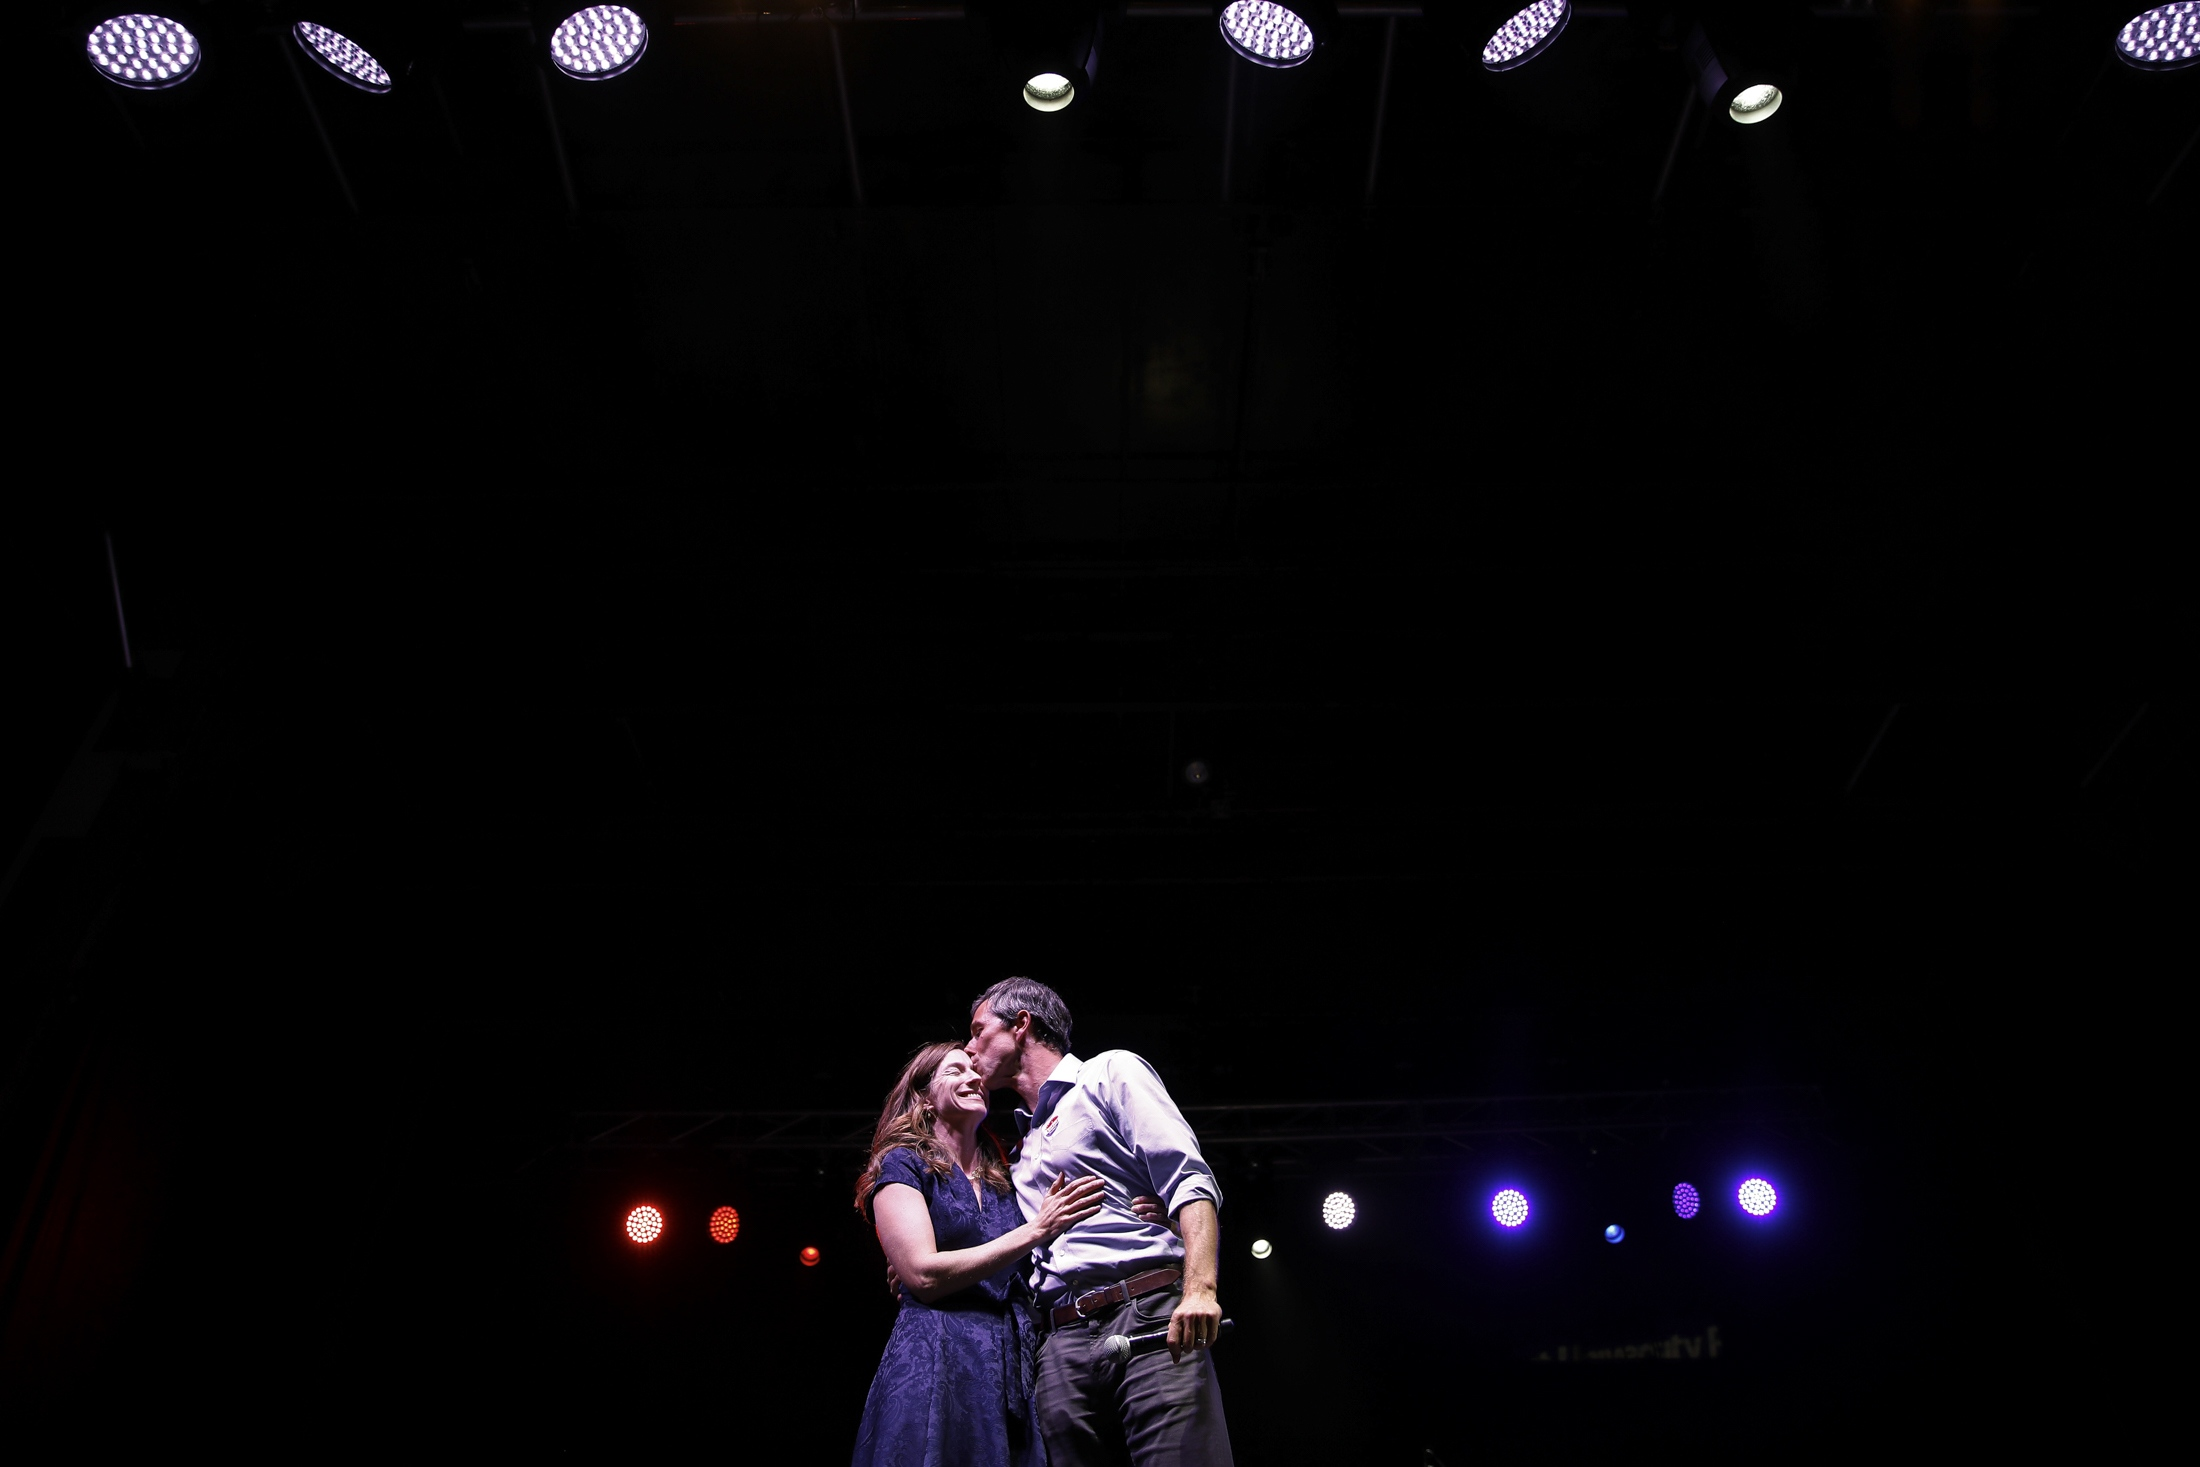 Beto O'Rourke kisses his wife before delivering his concession speech after being defeated by republican Senator Ted Cruz in the high contentious midterm election for a Texas senate seat. O'Rourke is one of the most popular democrats to run in Texas in years as a senate seat hasn't been held by a democrat since 1988. The midterm voter turnout was the highest it's been in decades with 53% of registered voters casting ballots.